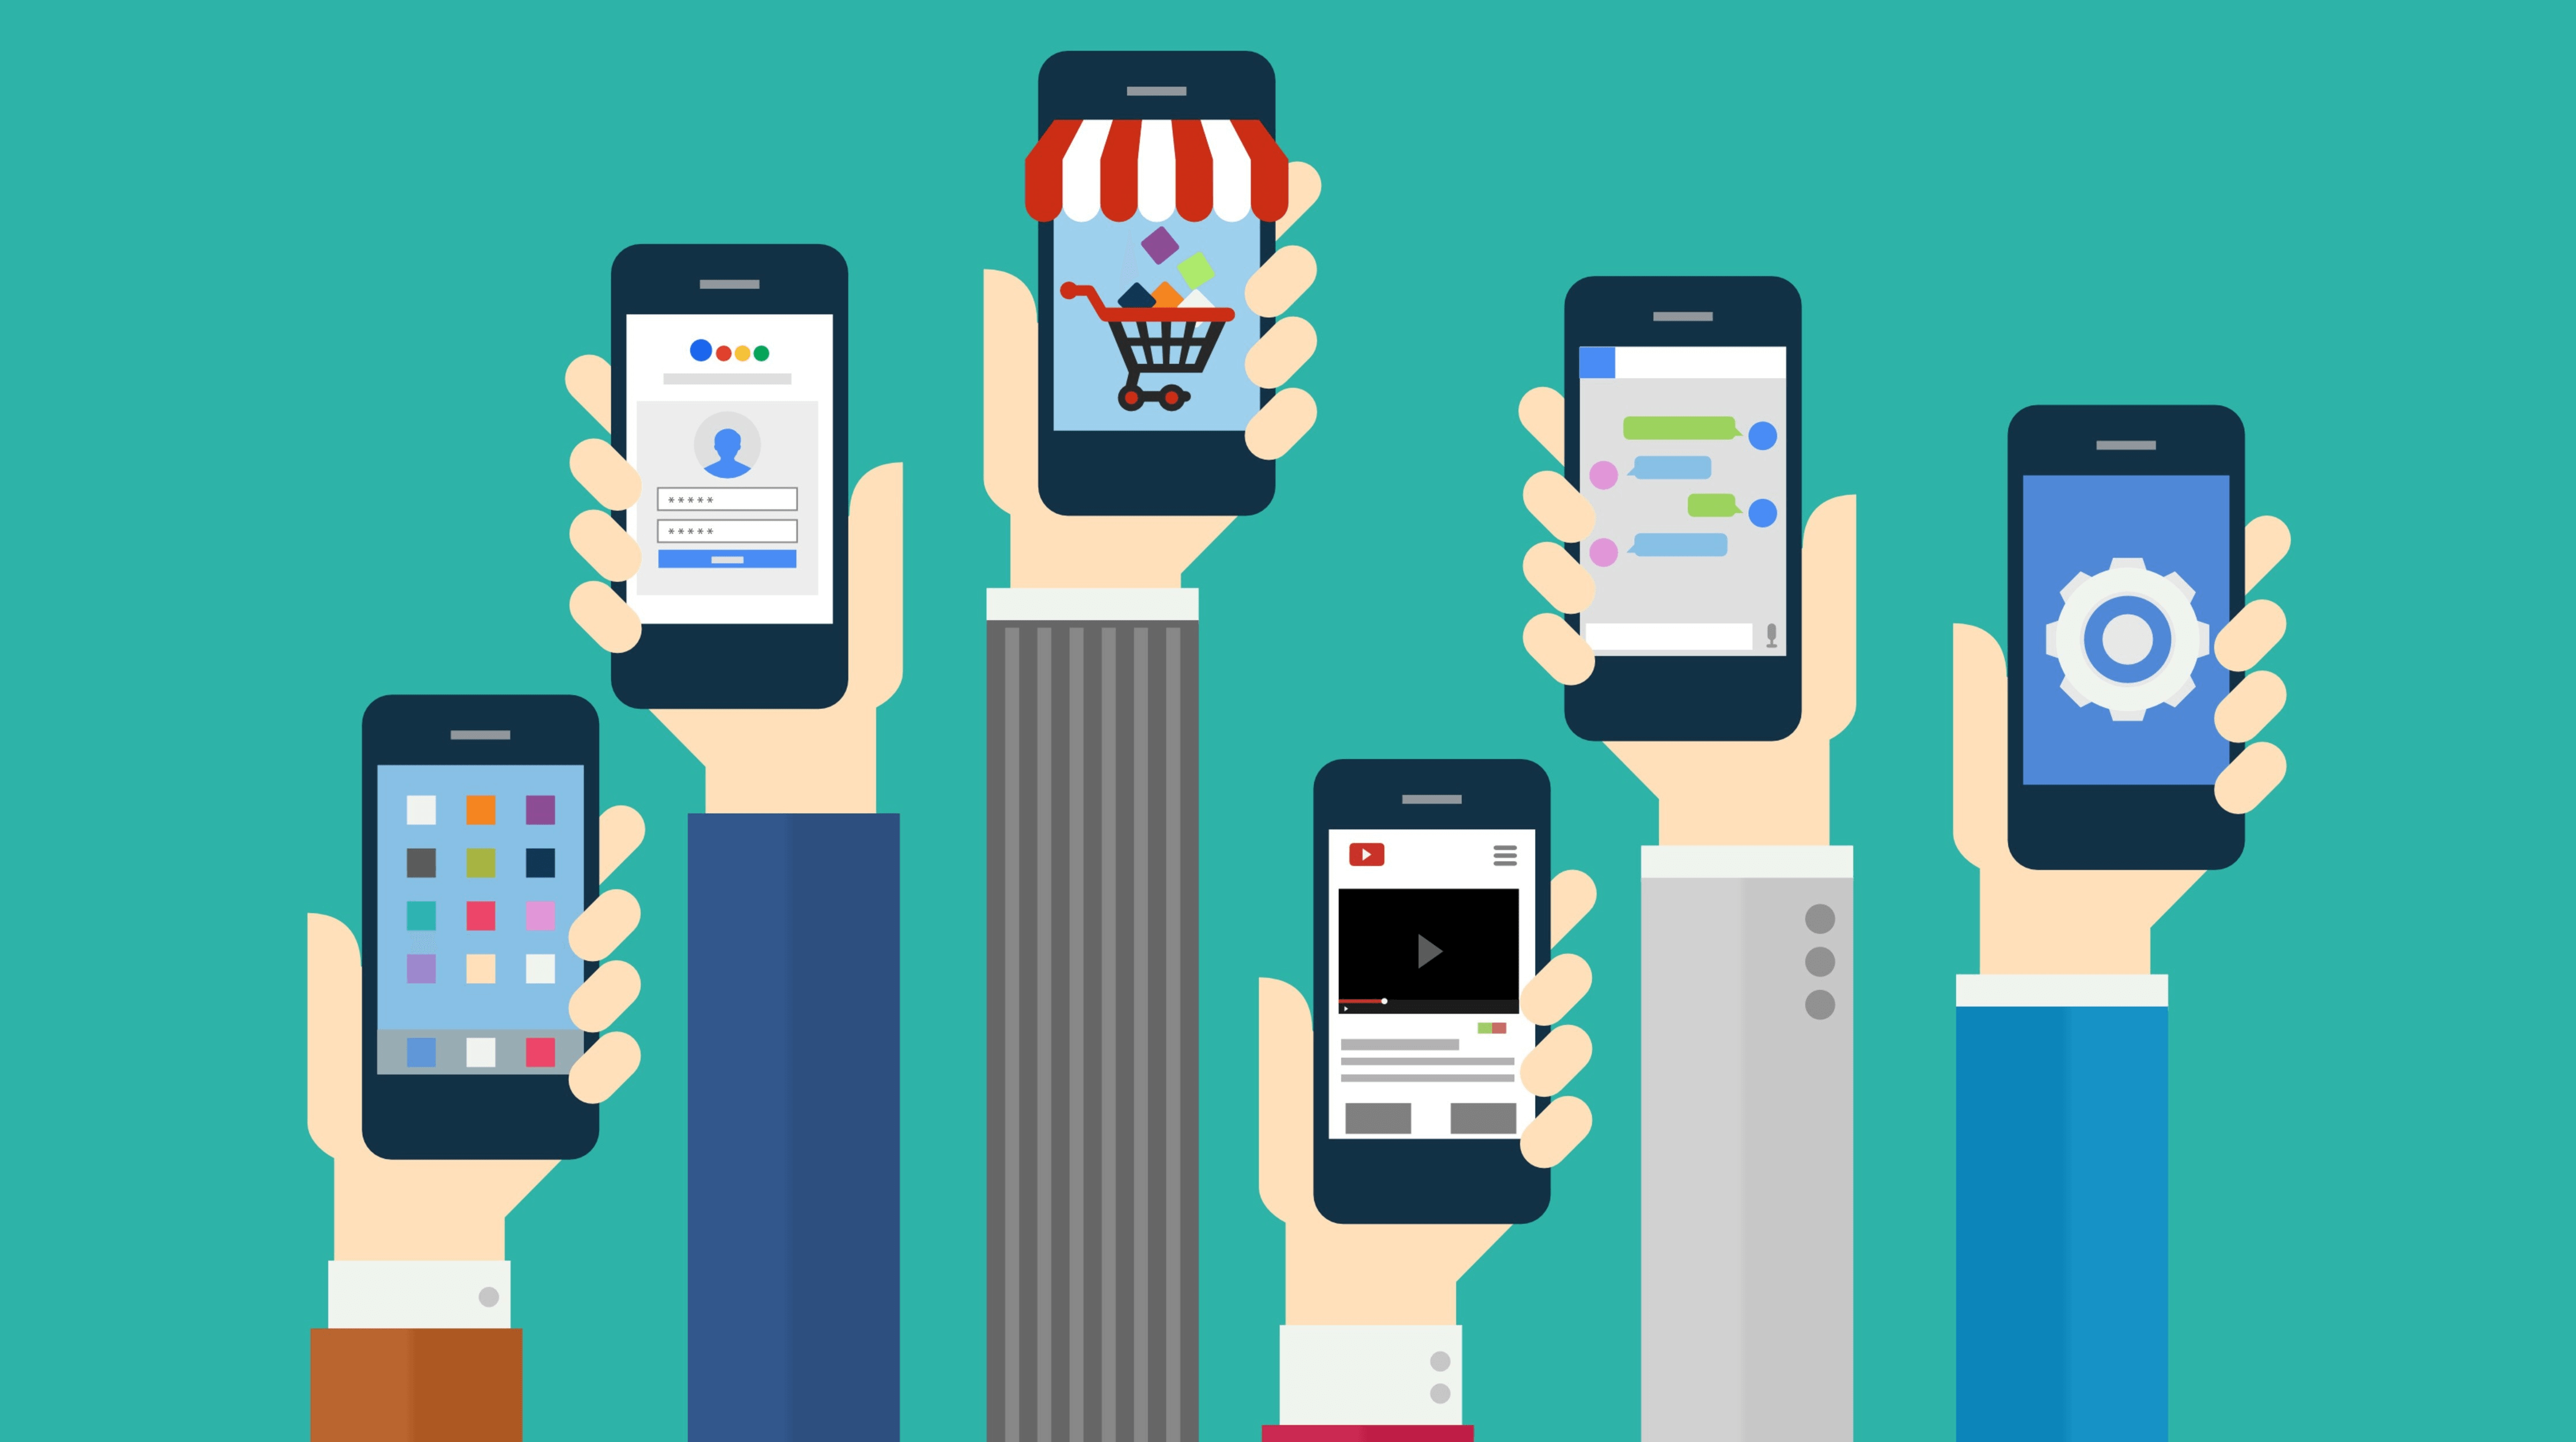 5-Types-Of-Mobile-Marketing-Campaigns-That-Help-Increase-Customer-Retention-Rates